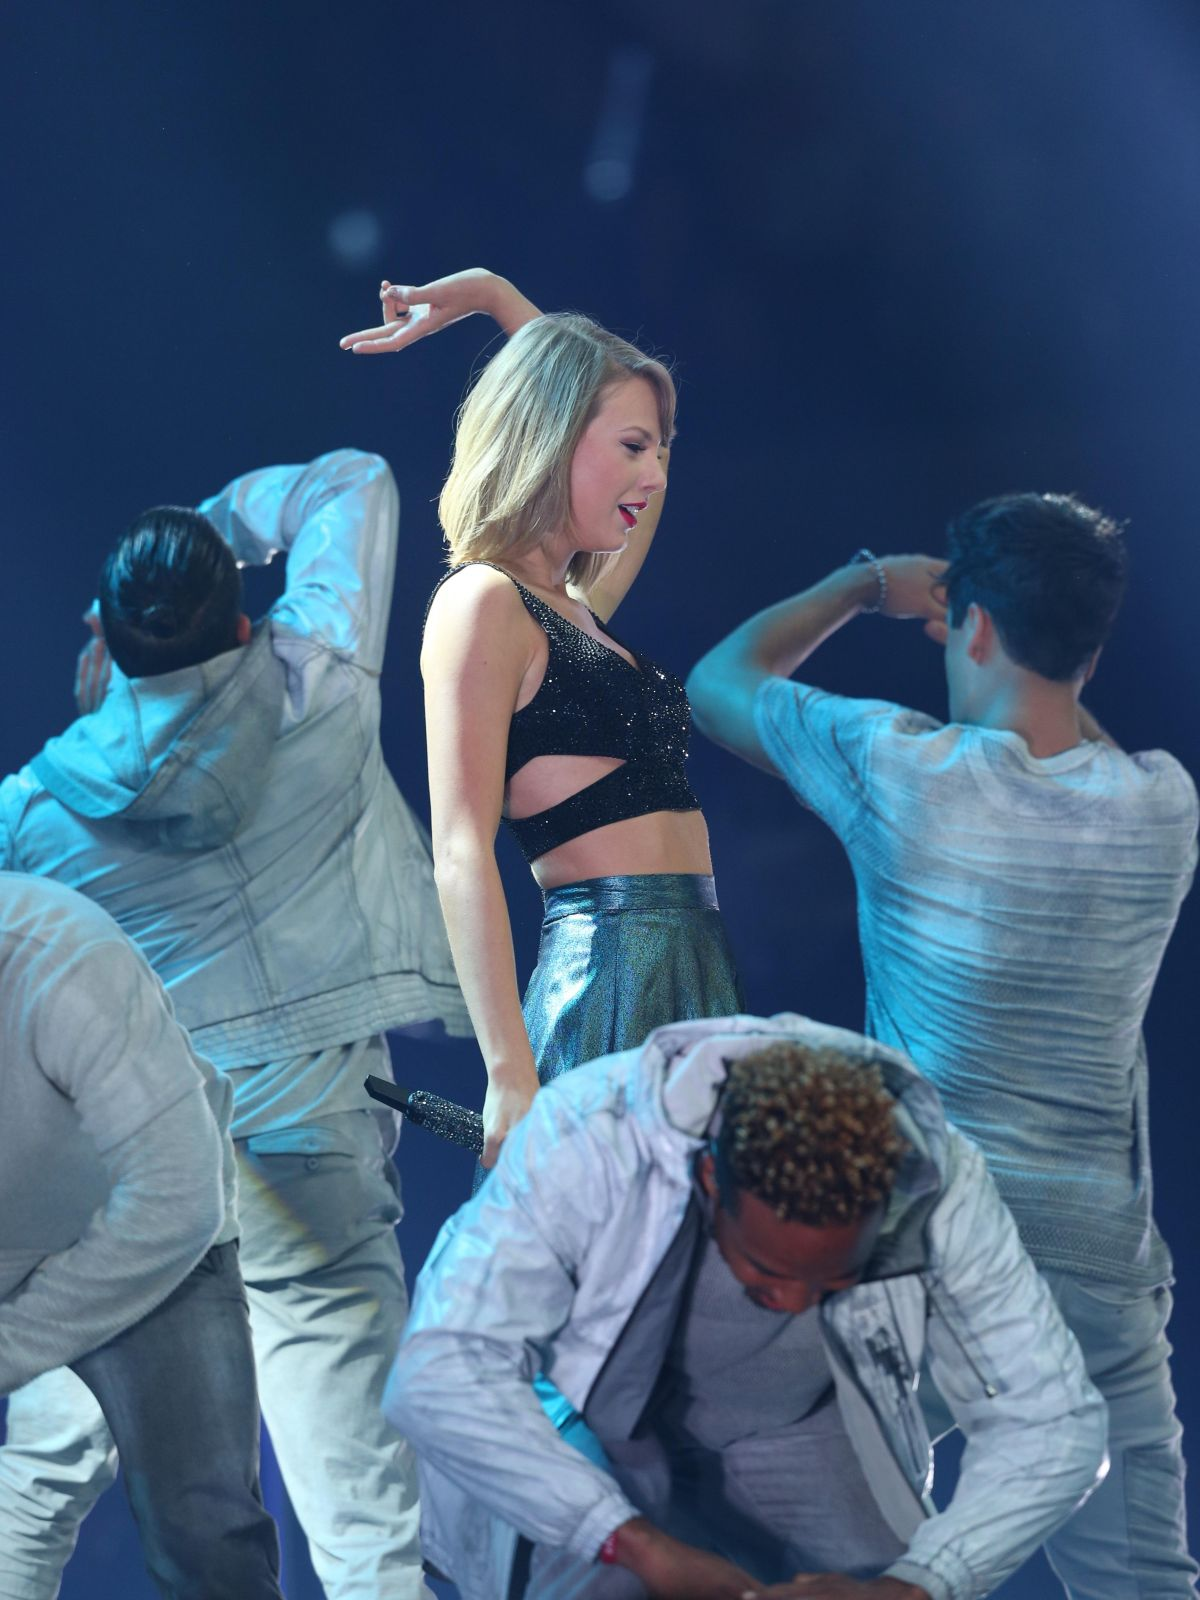 Taylor Swift 2015 : Taylor Swift Performs At The 1989 World Tour In Adelaide-08